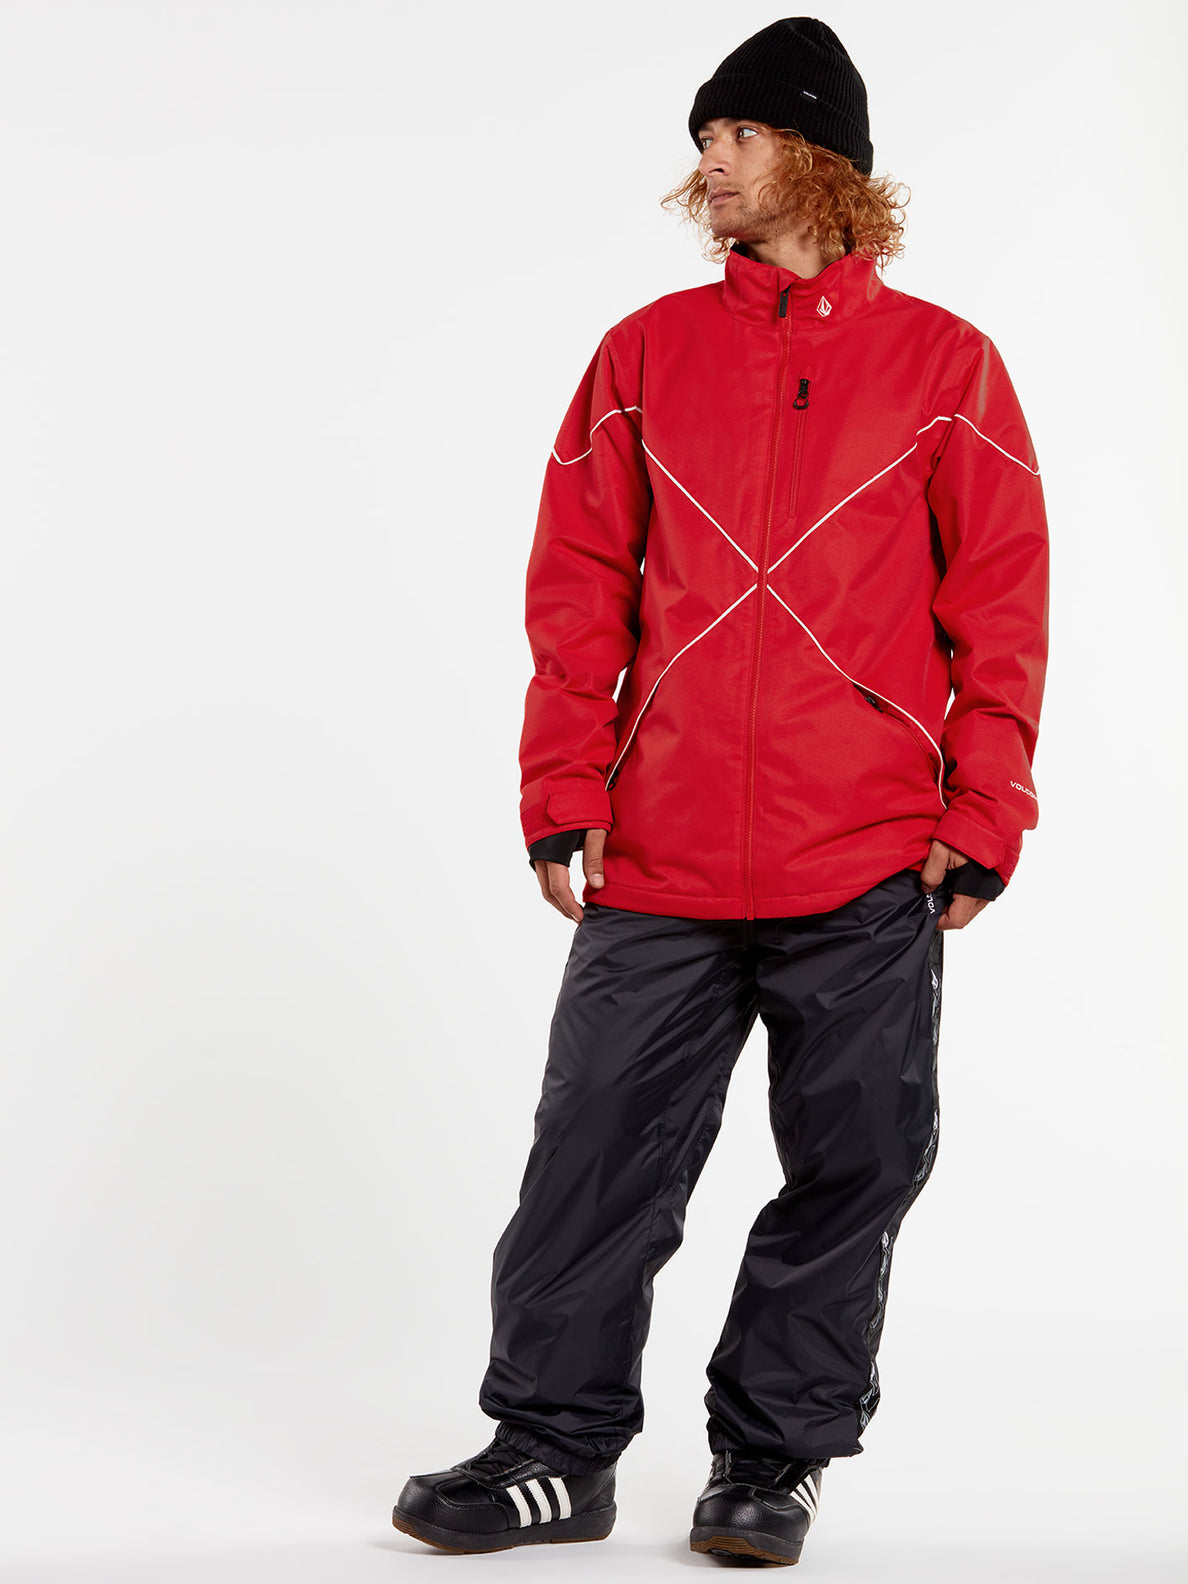 NO HOOD X JACKET - RED (G0652114_RED) [01]